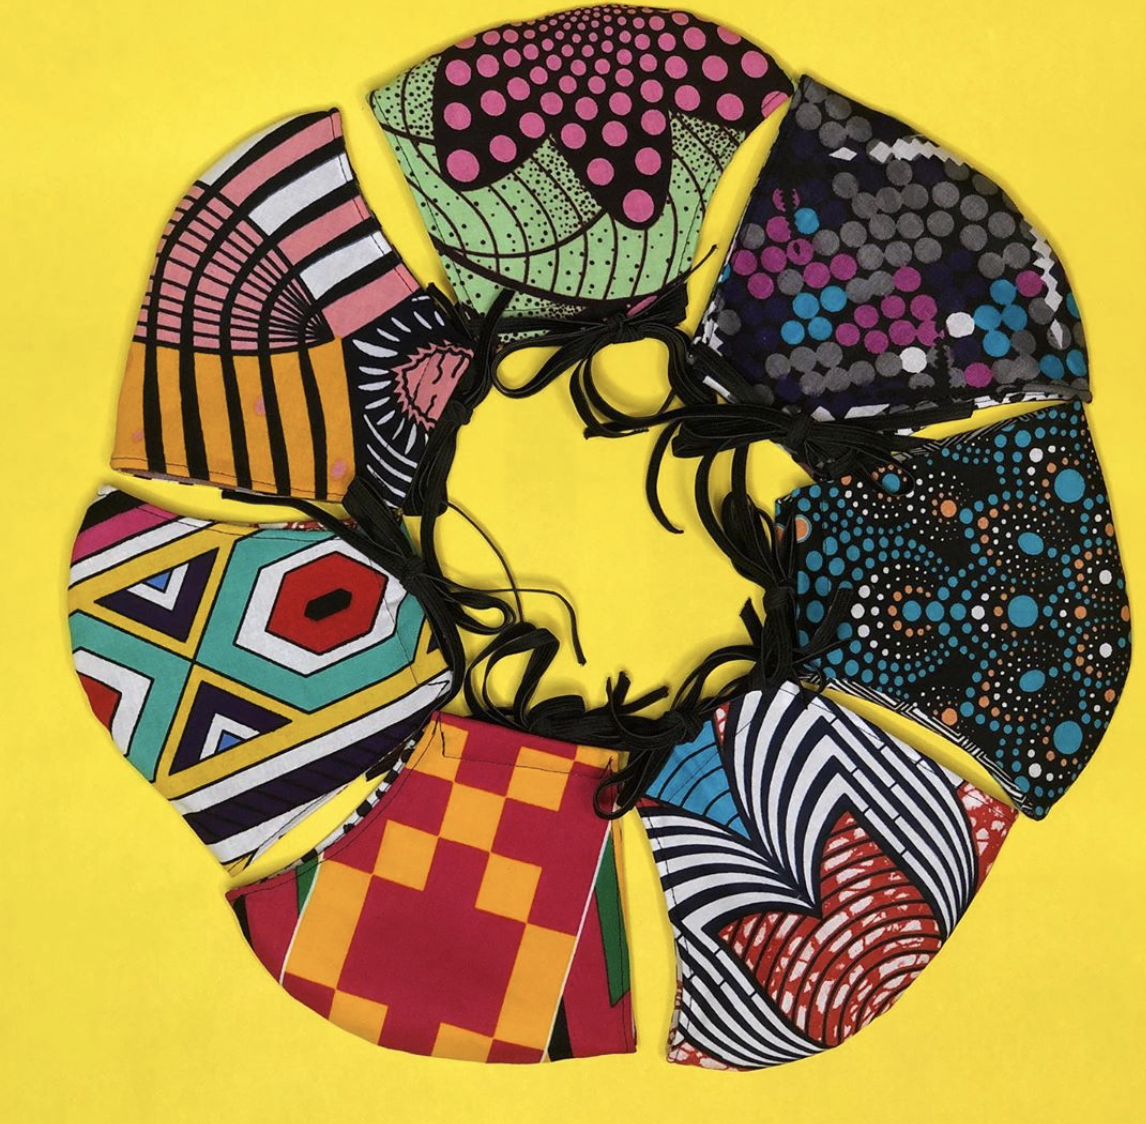 a yellow background with a ring a colorful, printed fabric masks.